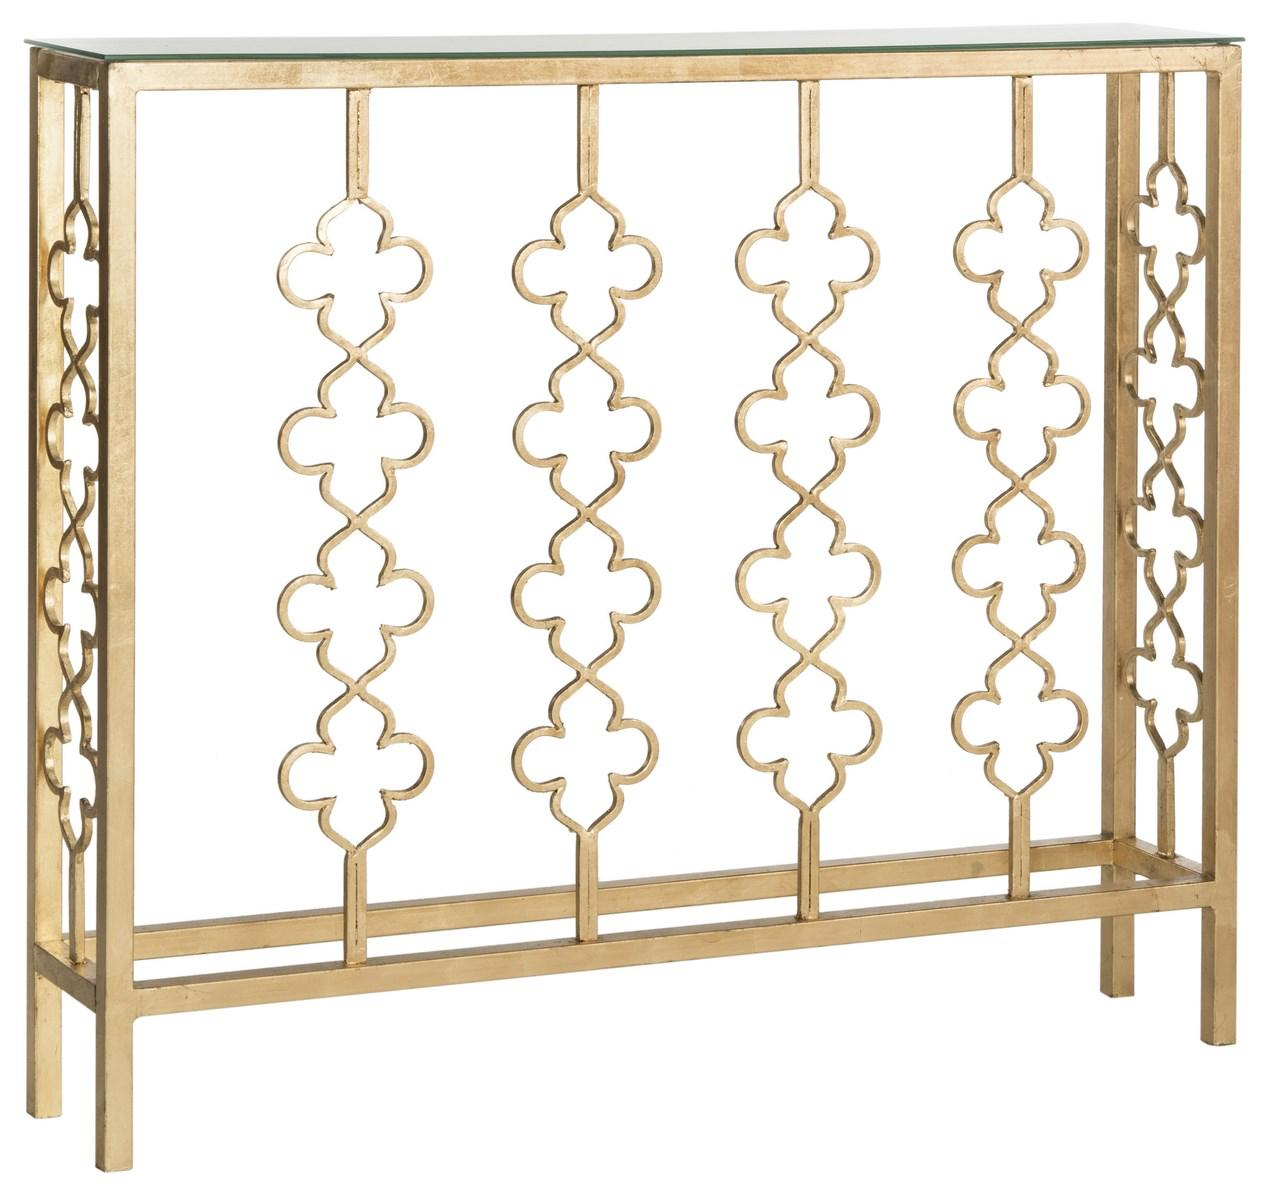 consoles furniture safavieh side gold accent console table share this product black glass nightstand tennis metal end base small round with screw legs rose curved patio umbrella